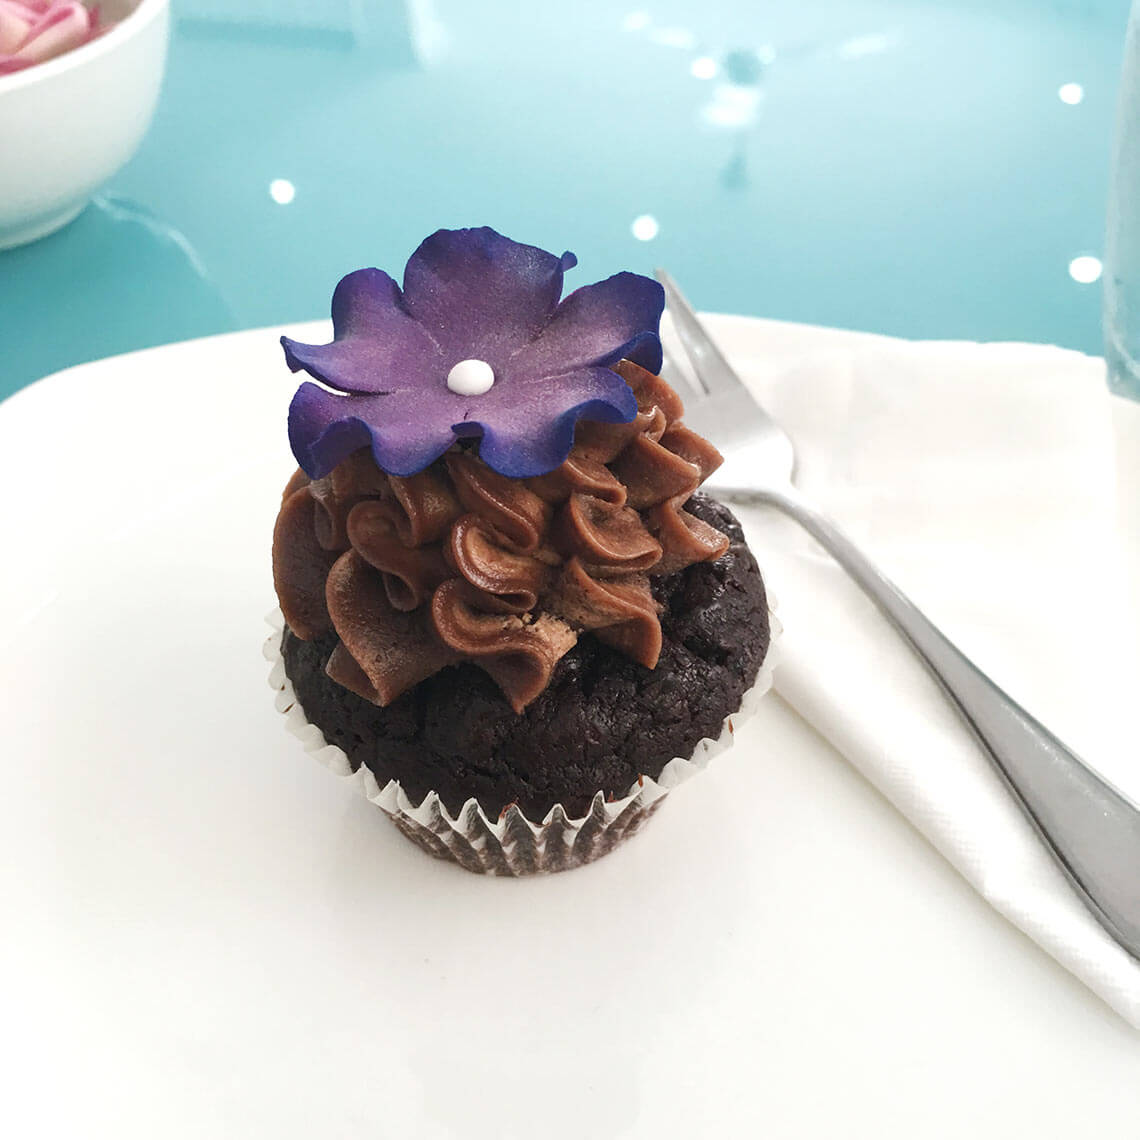 Schoko Cupcake im Bloom Cafe, Siem Reap